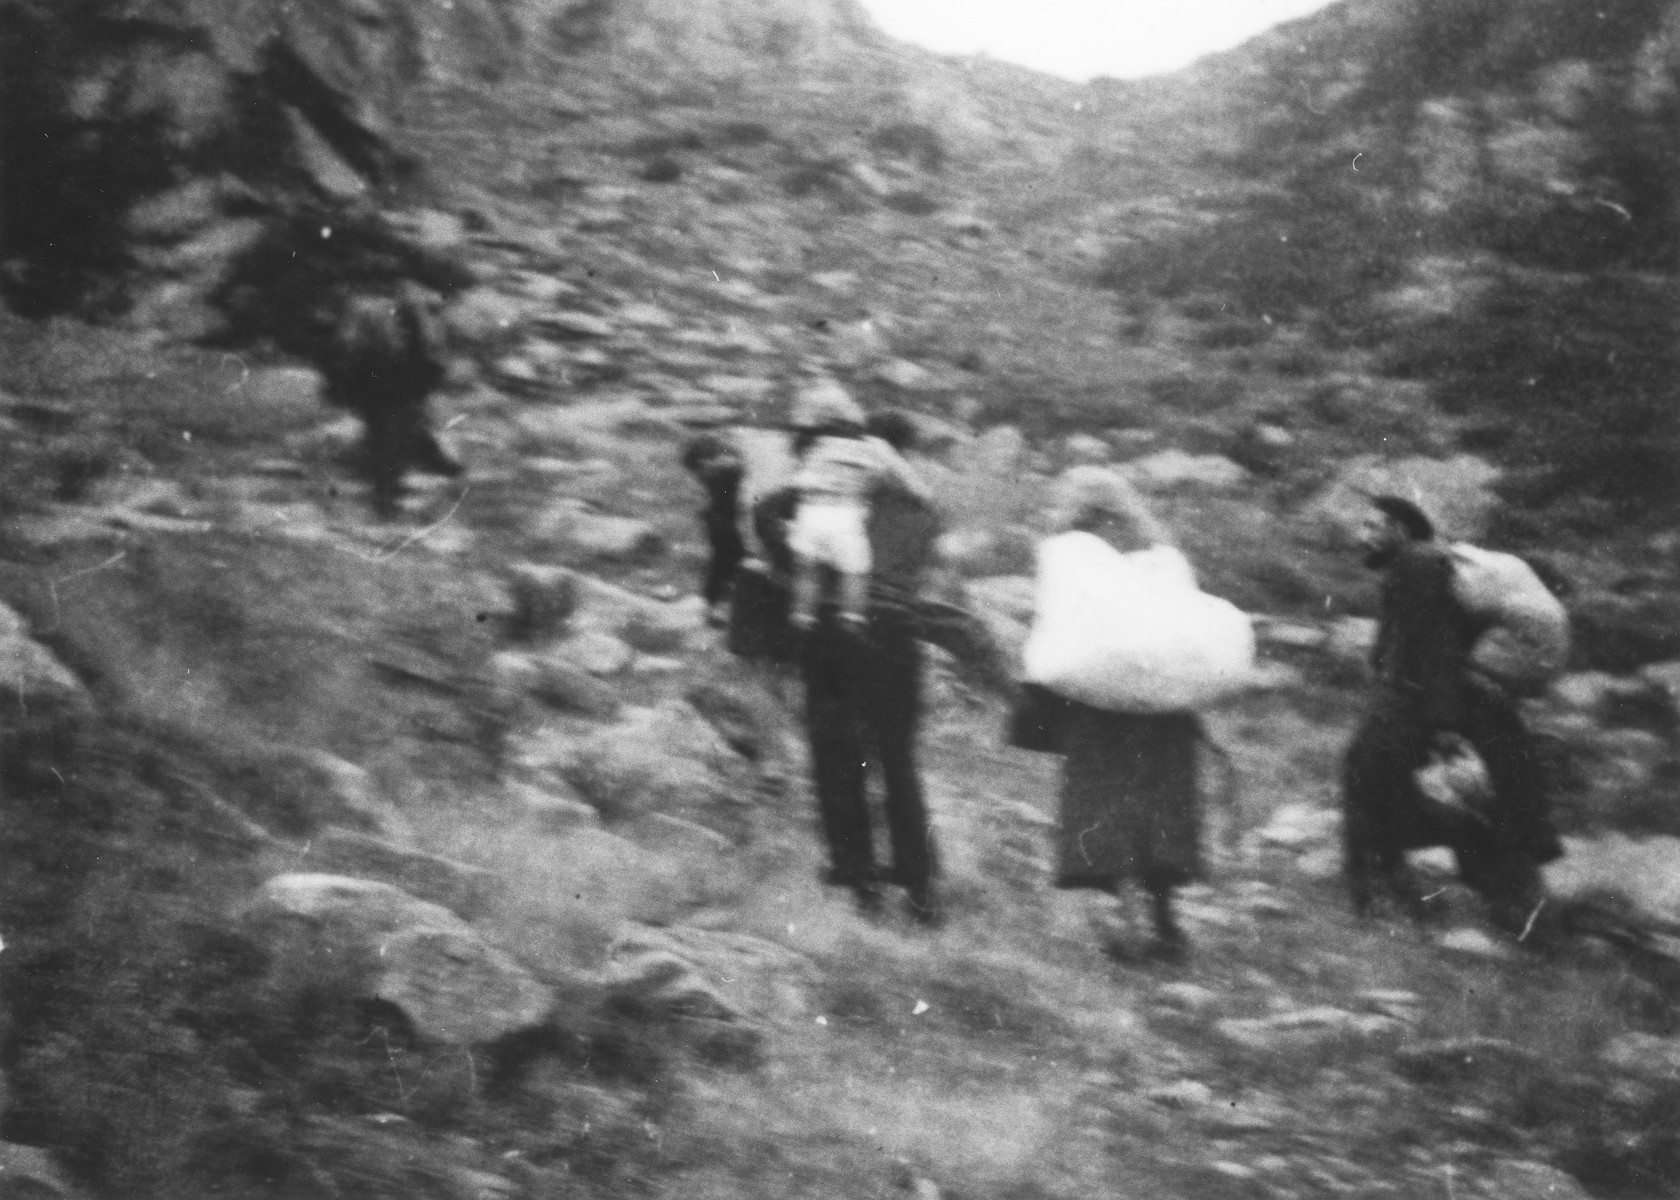 Jewish refugees escape over the Alps to Italy from the Italian-occupied zone in France following the signing of the Italian armistice.